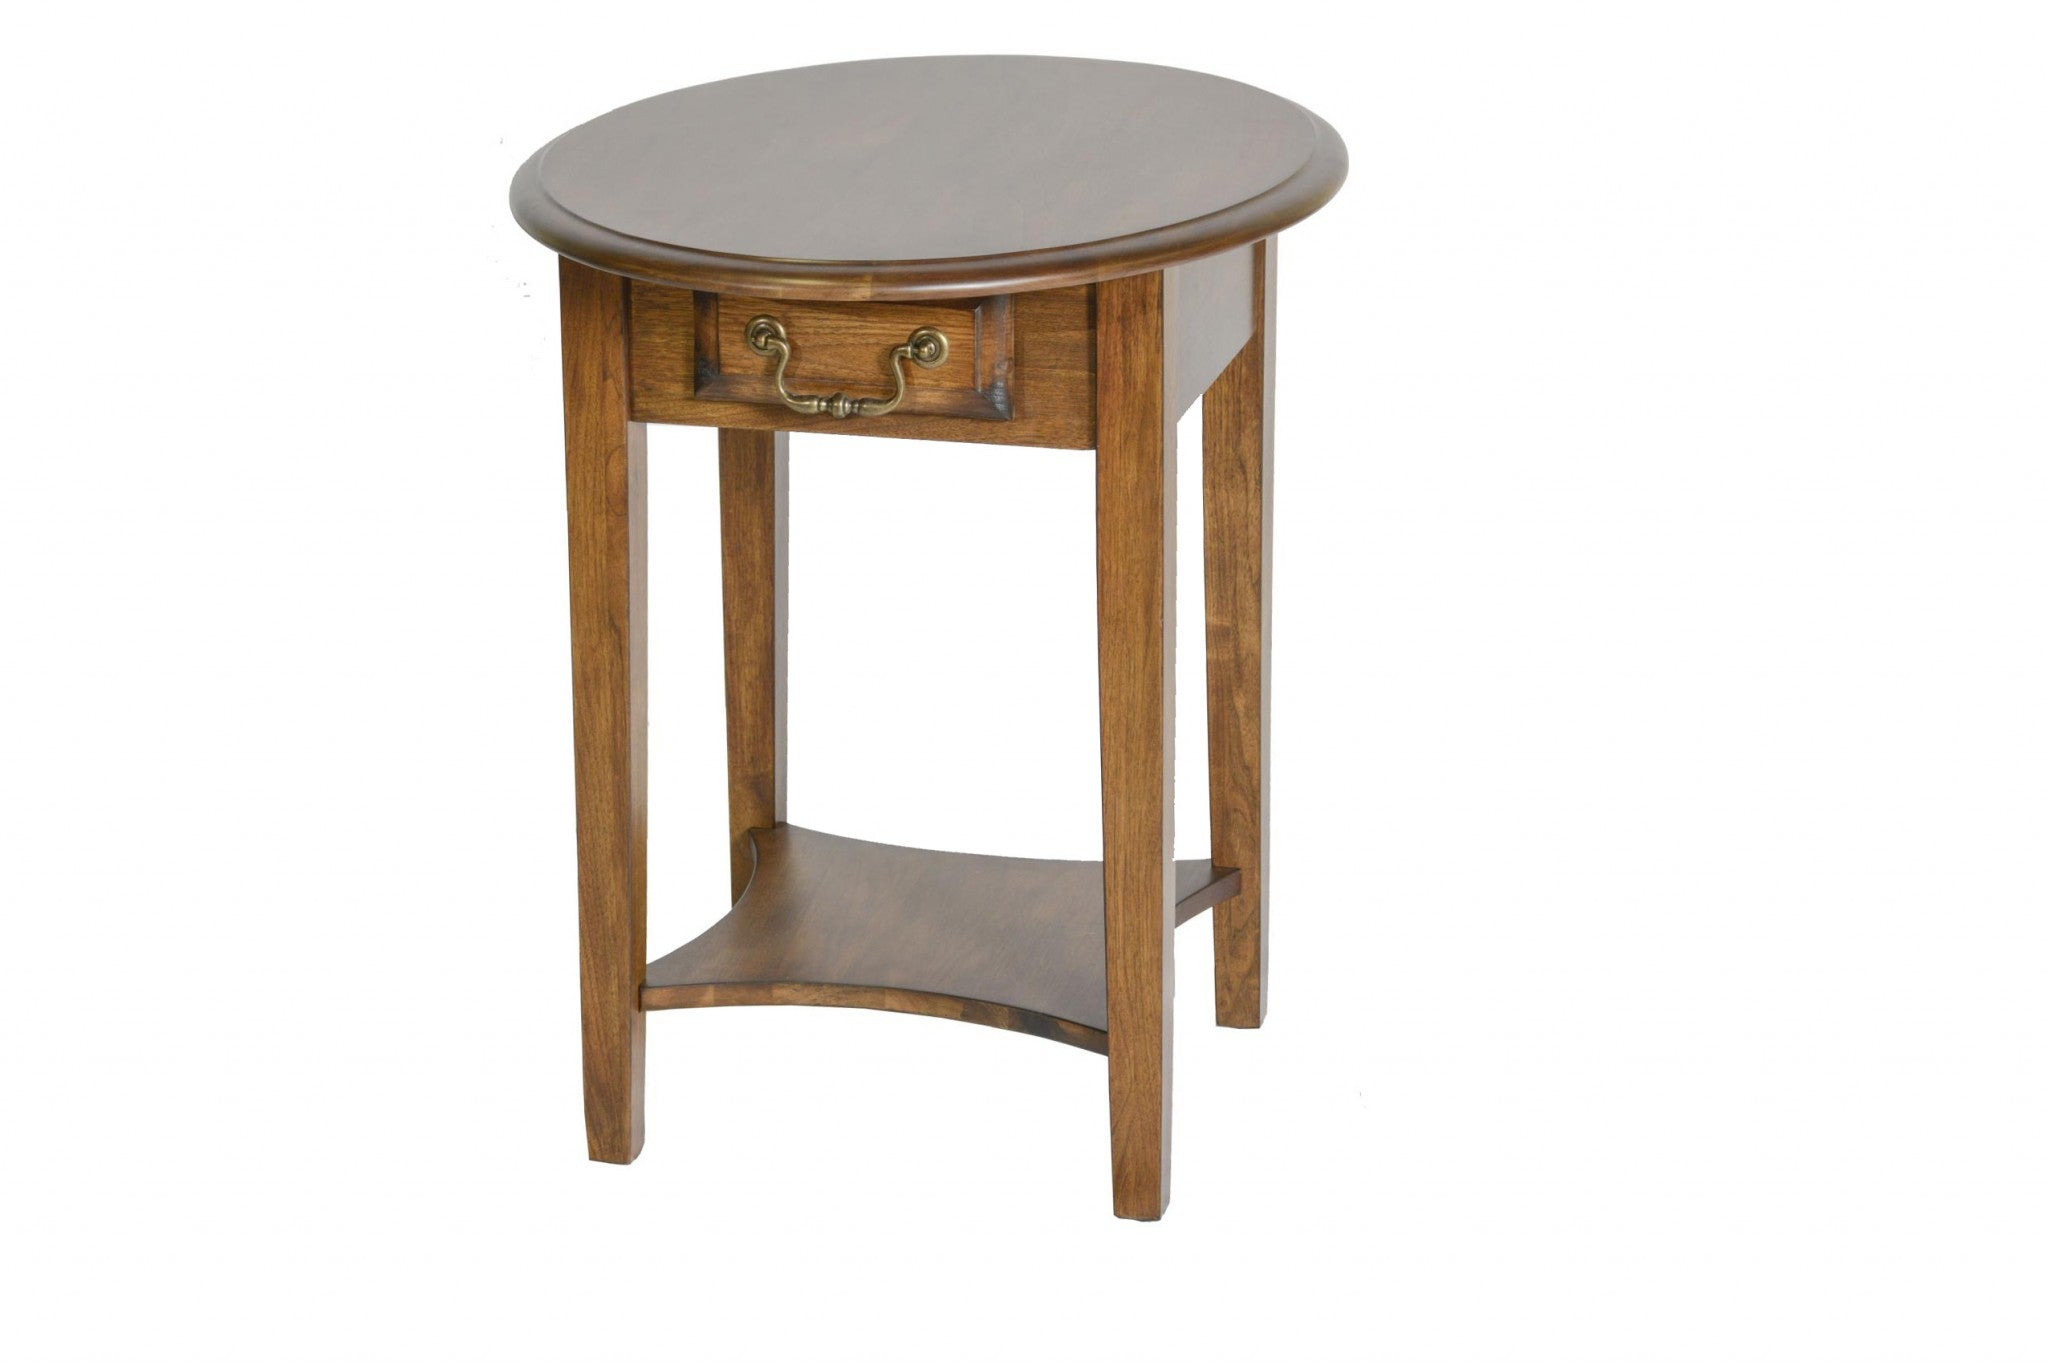 "26"" X 20"" X 24"" Burnished Walnut Hardwood Rounded End Table With Drawer"